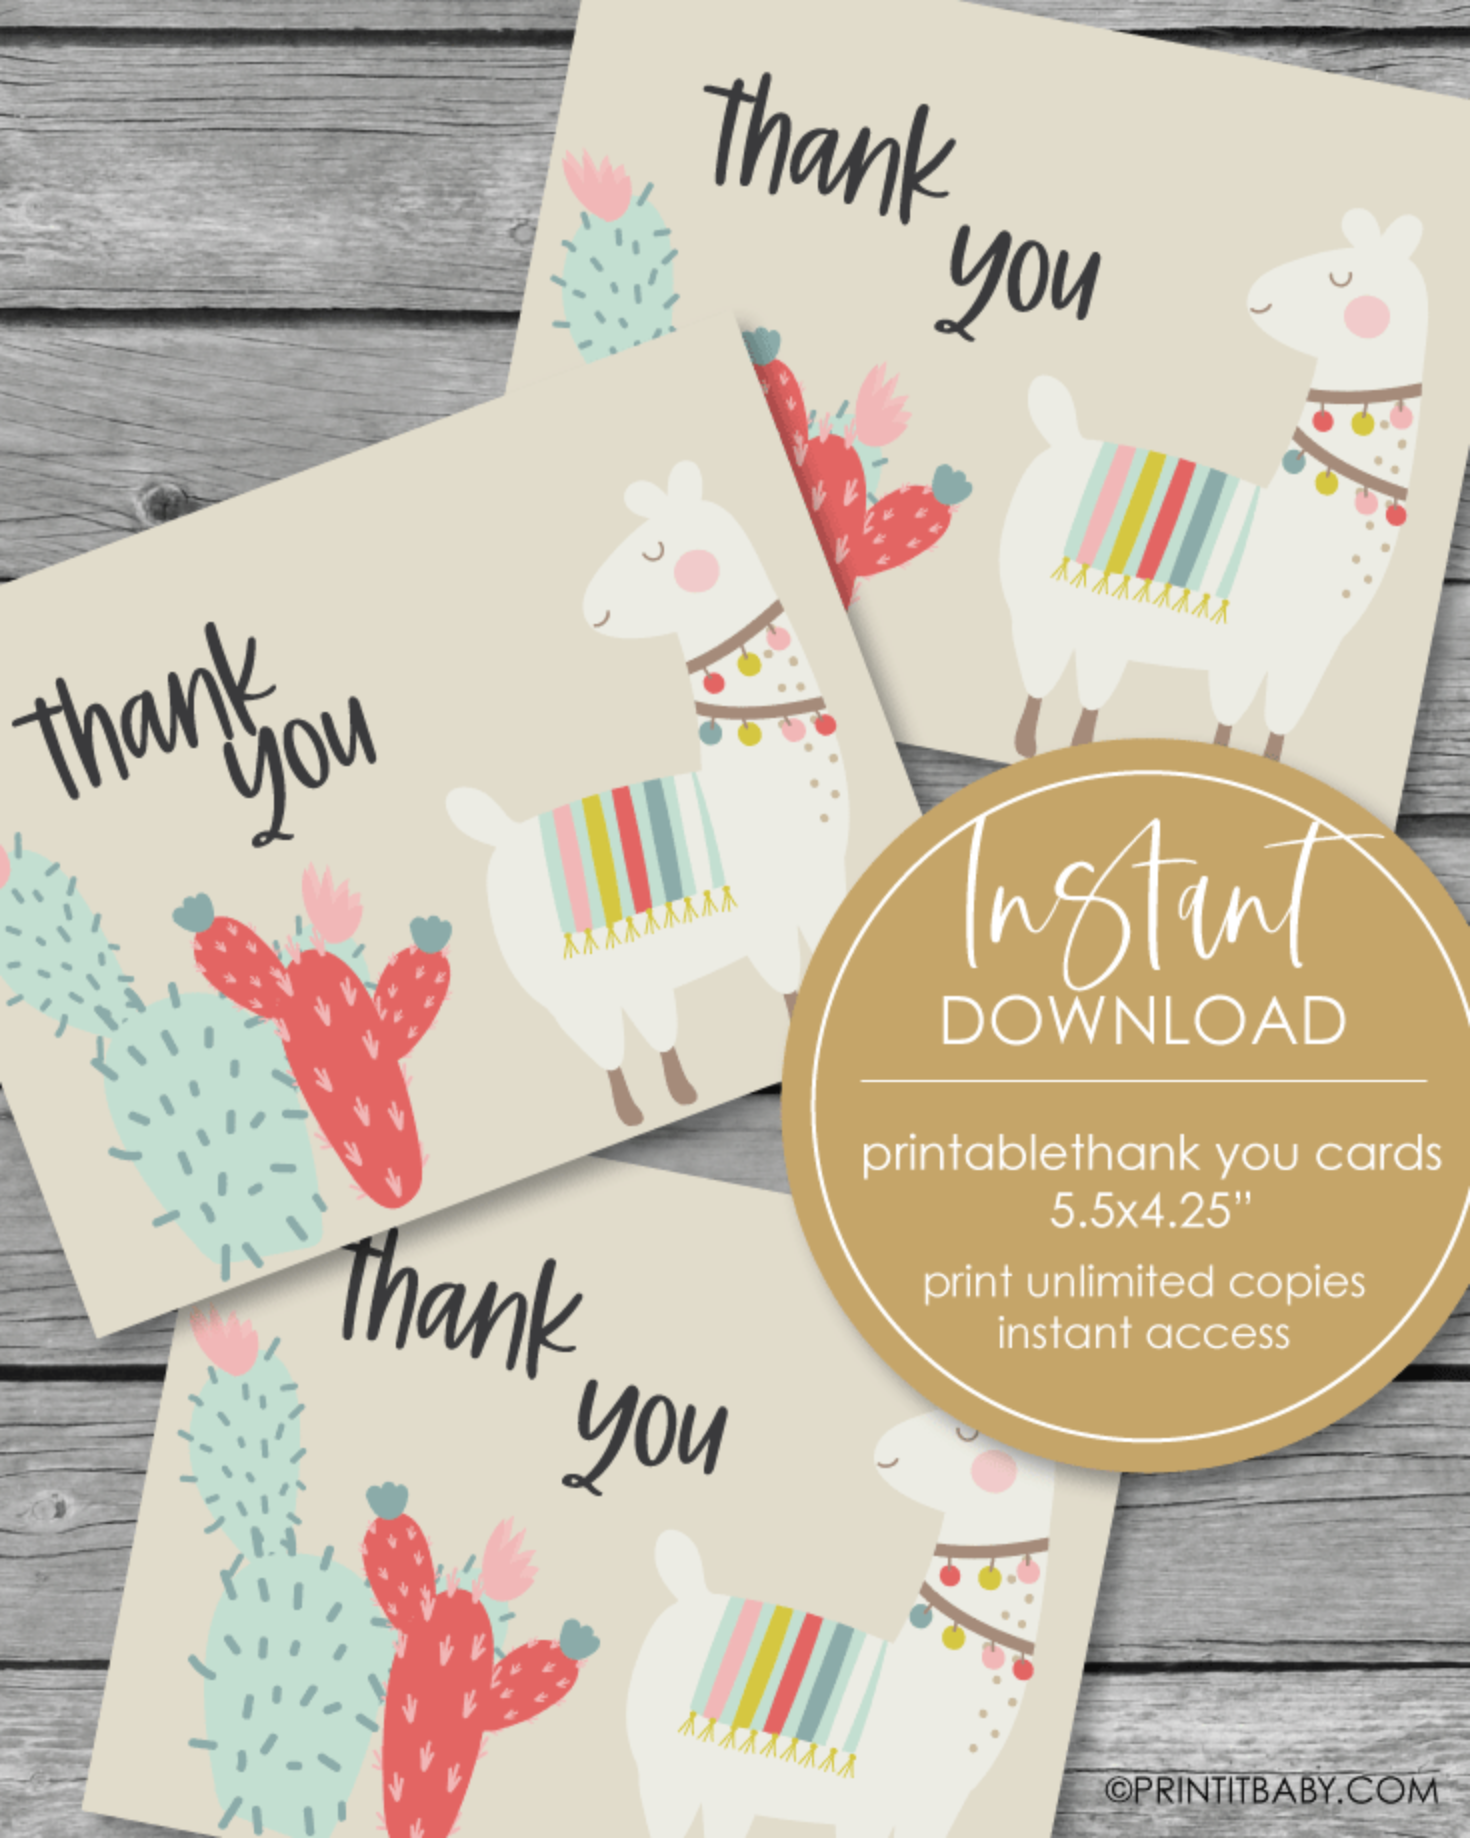 Printable Thank You Card - Boho Llama Theme - 5.5 x 4.25""